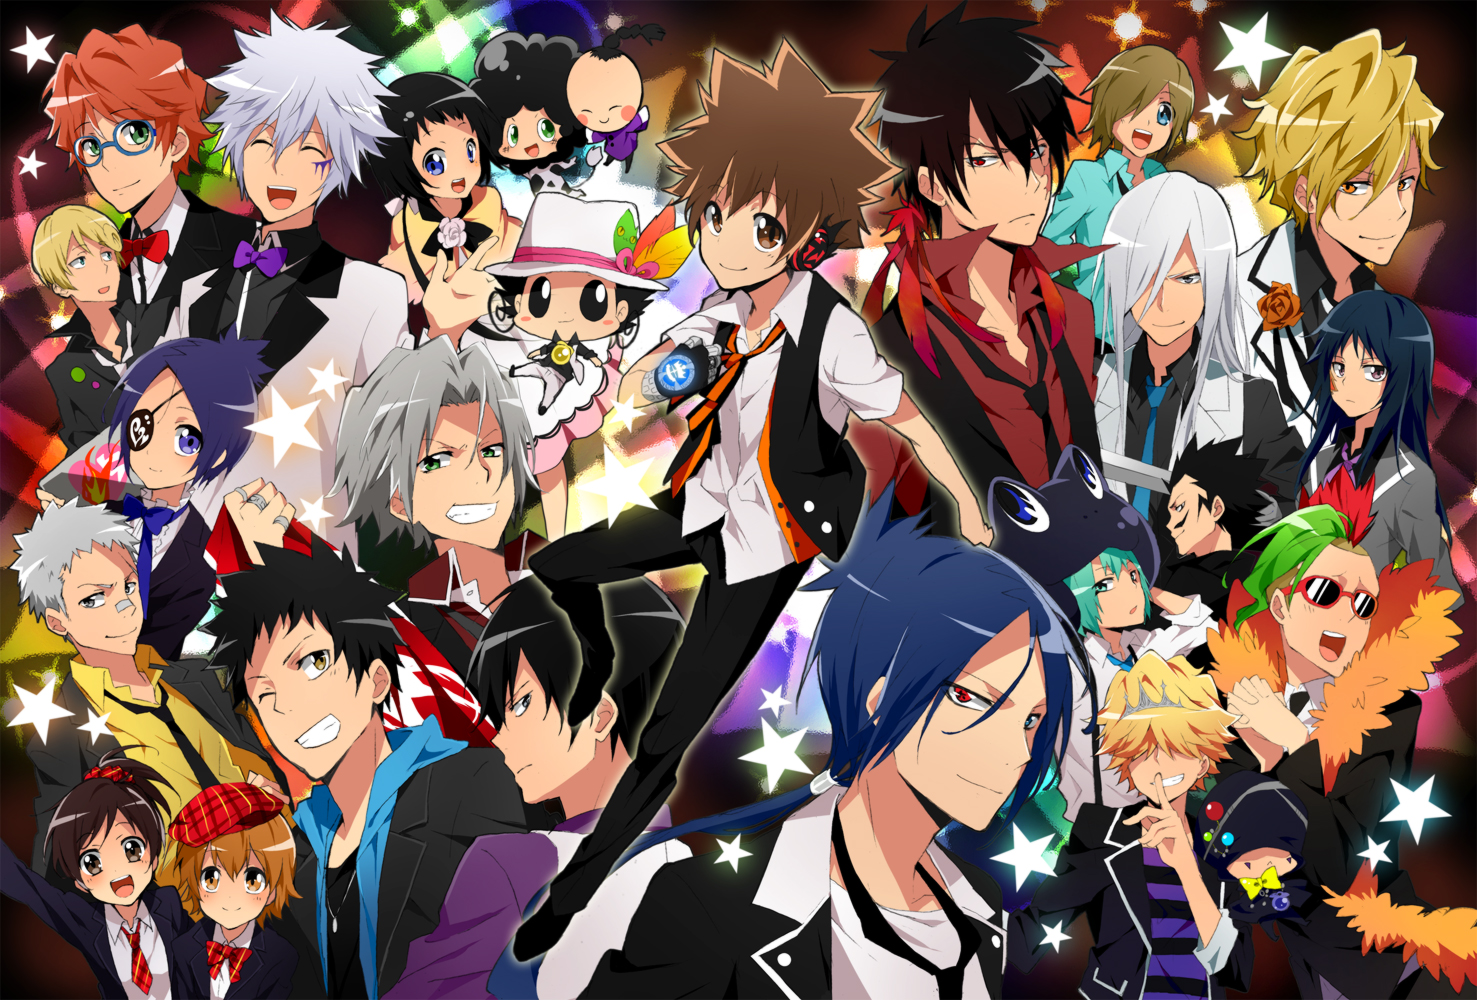 Anime Character 2 : Anime all together images khr hd wallpaper and background